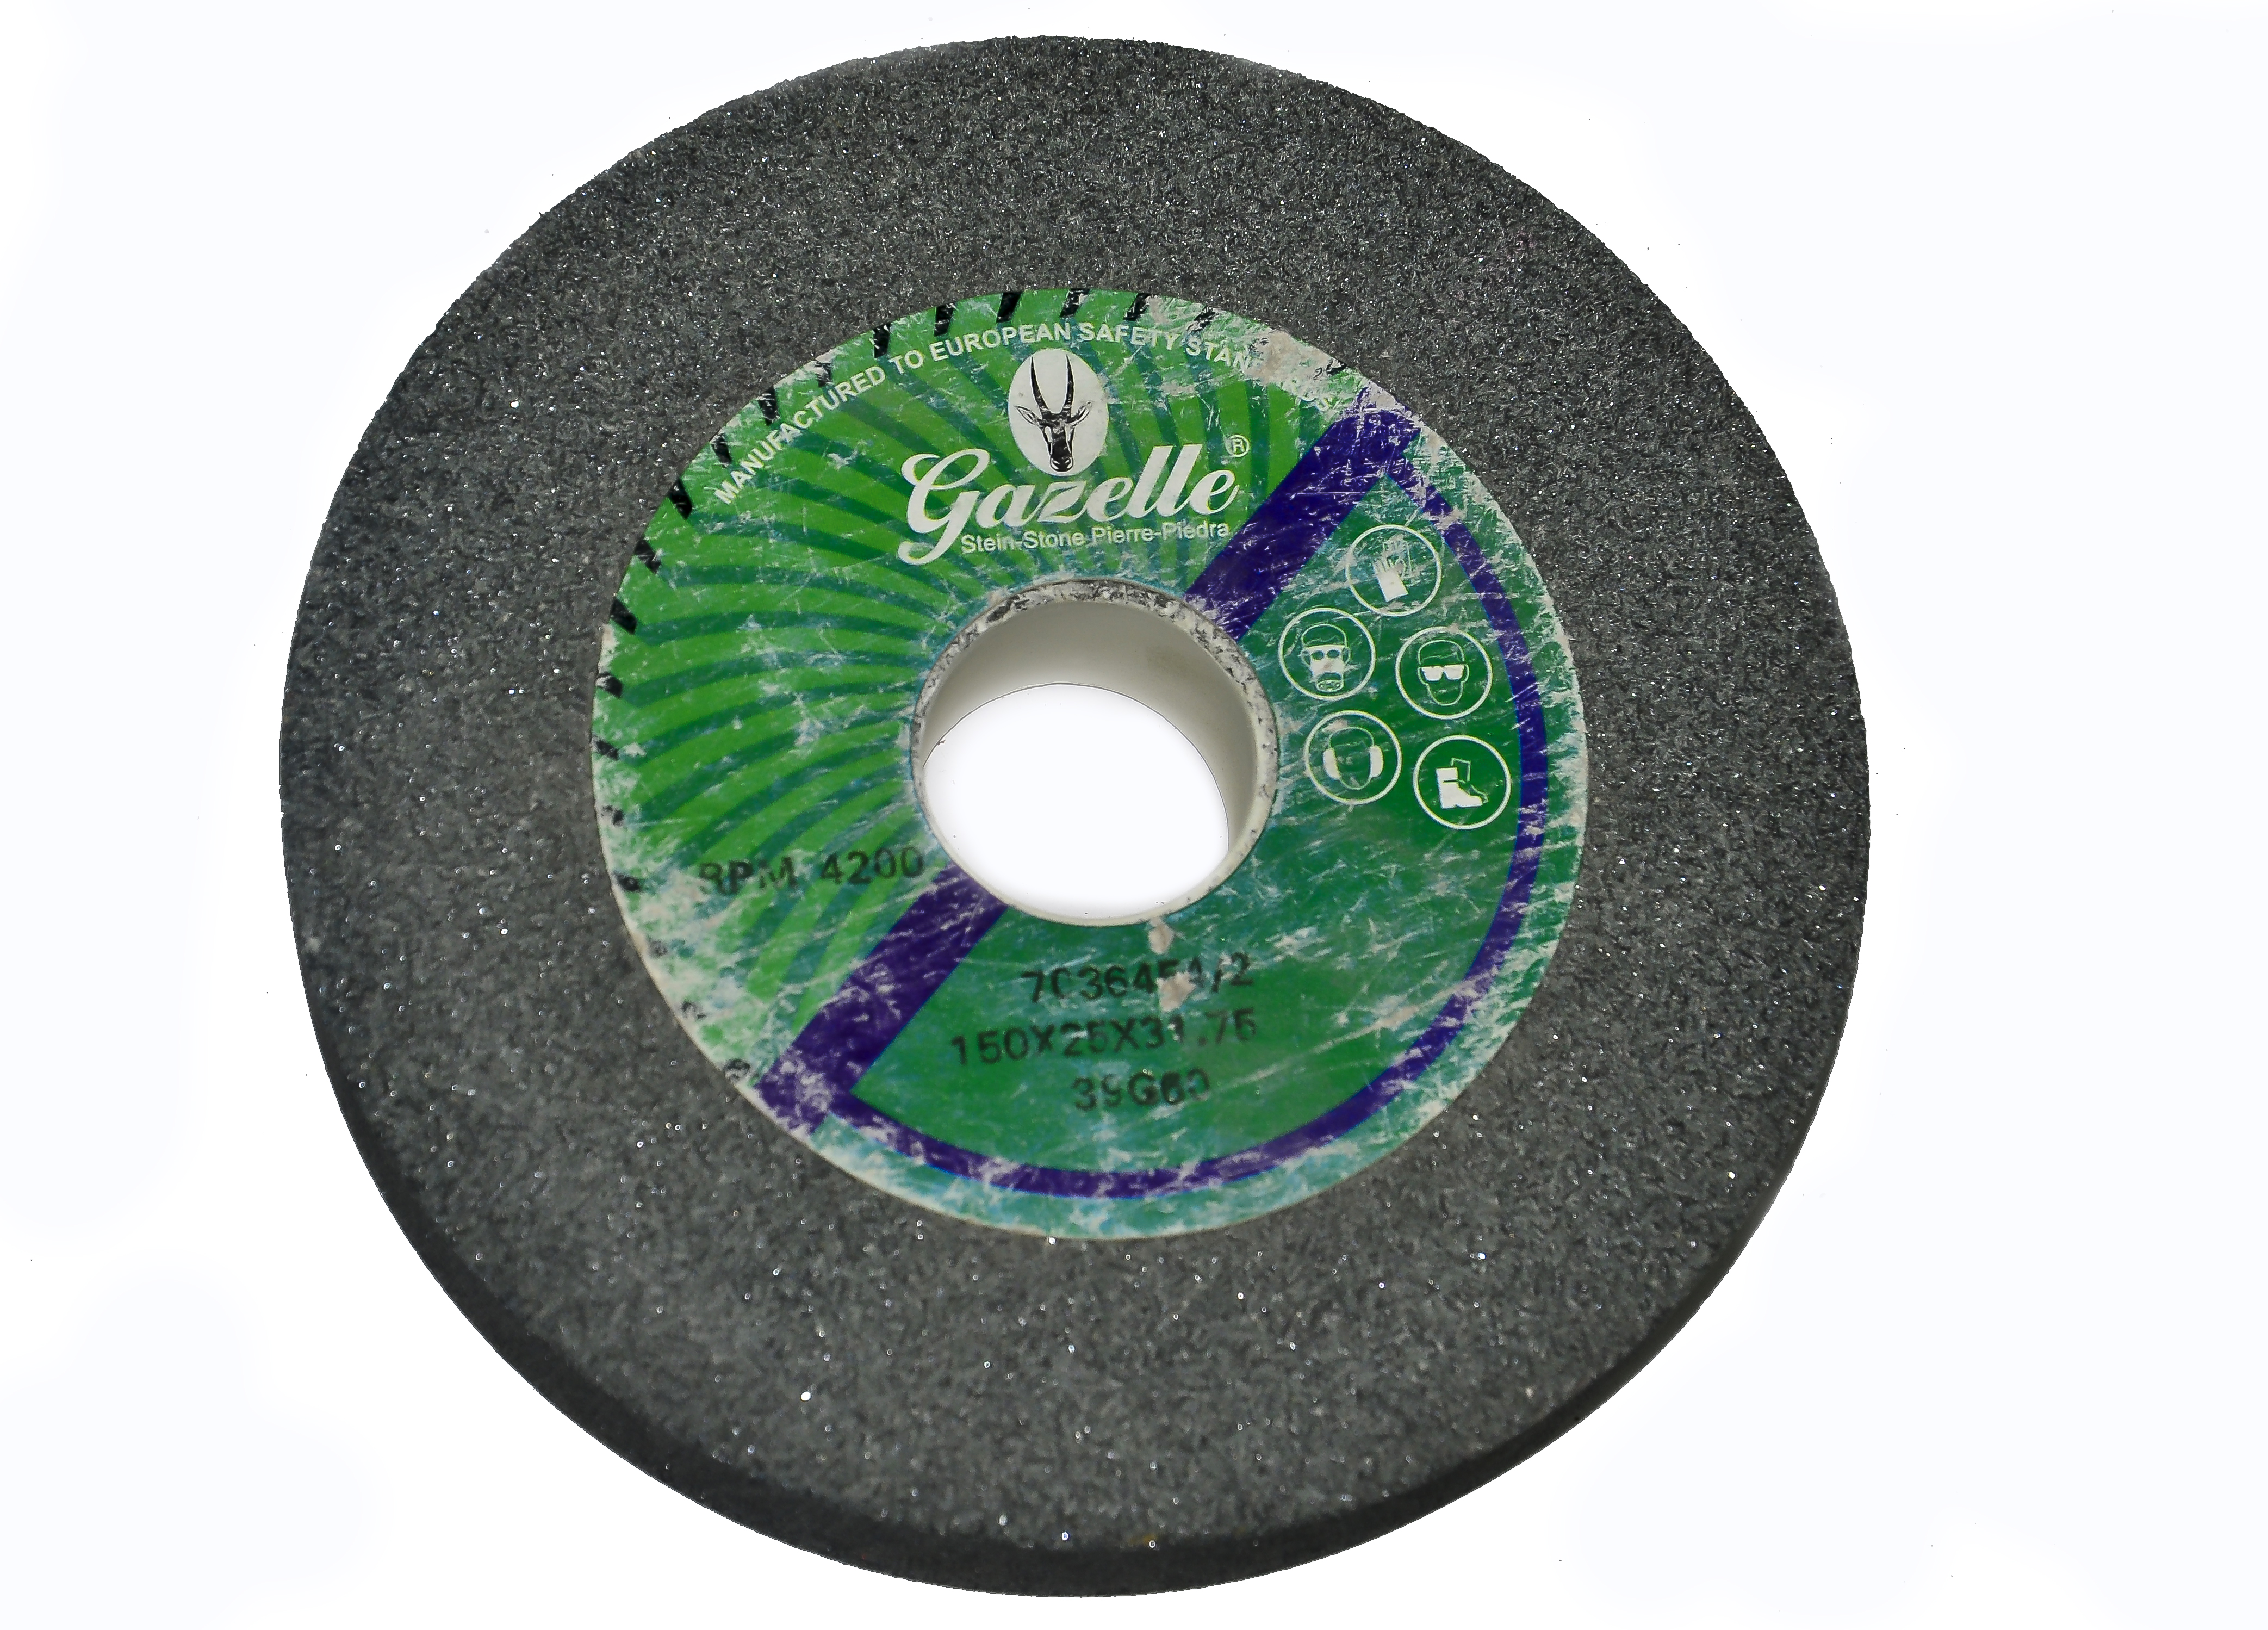 GAZELLE GAZ-15020-46B - Bench Grinding Wheels – Aluminium Oxide 150 x 20 x 31.75mm Rough